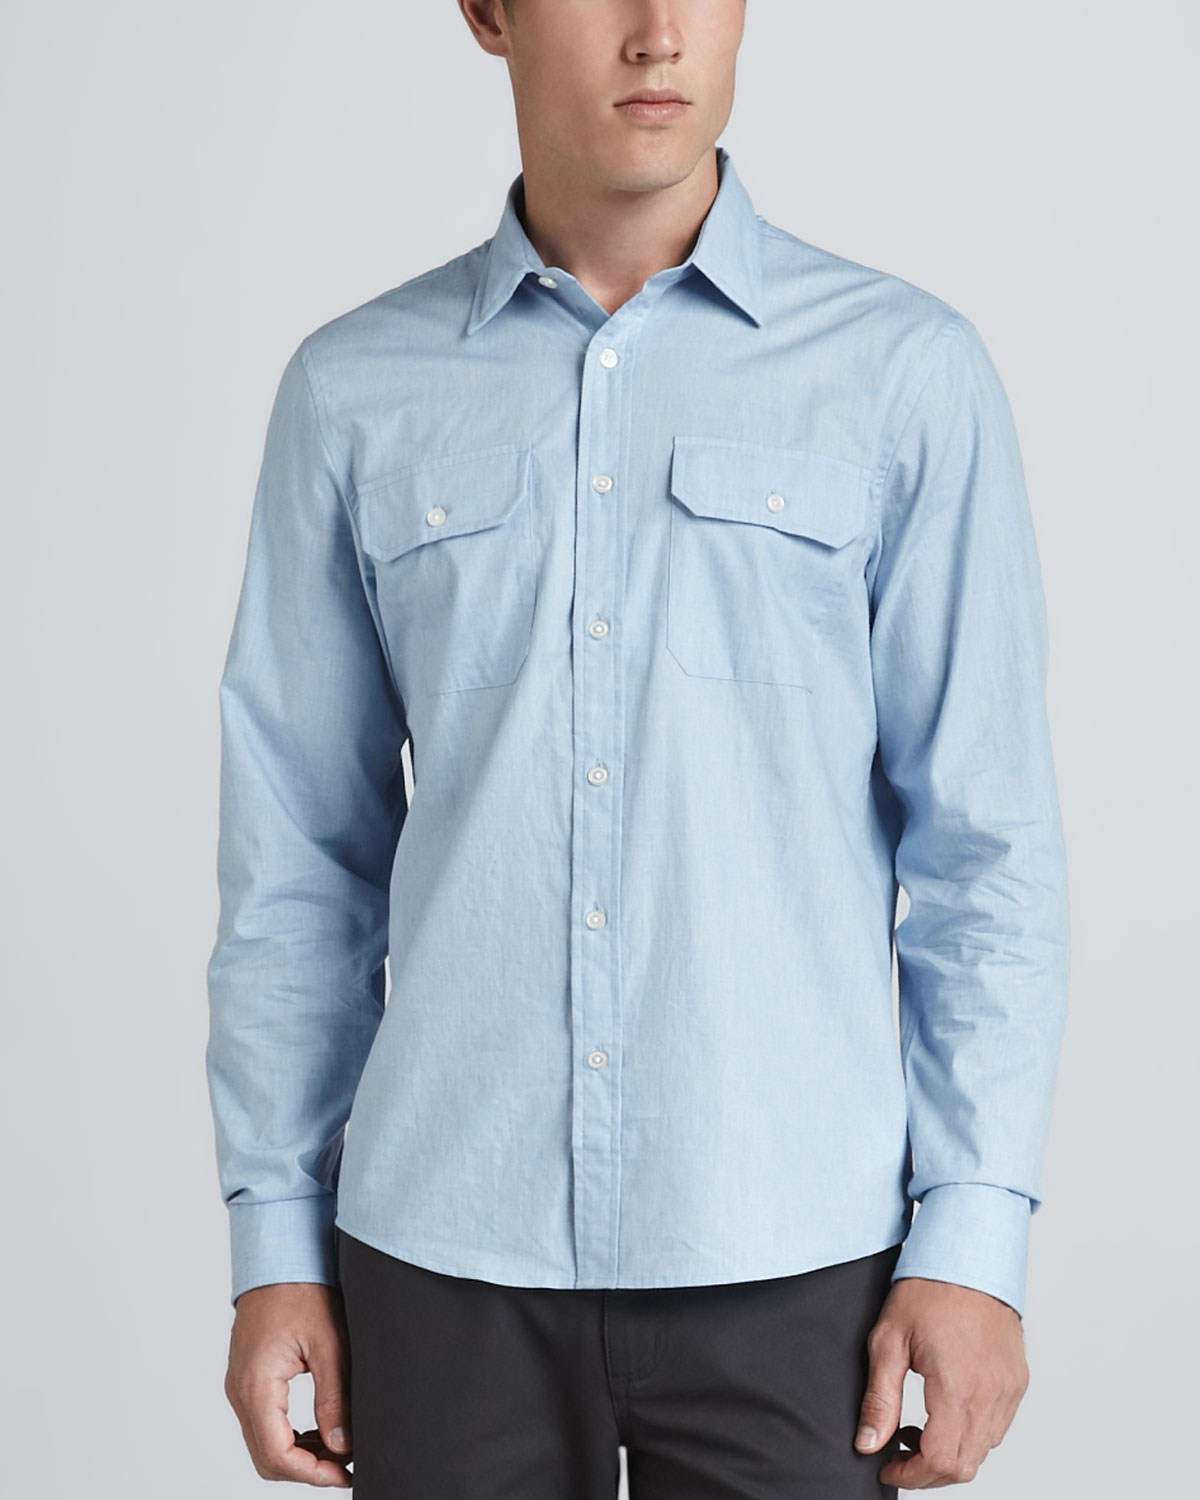 michael kors double pocket shirt in blue for men light blue lyst. Black Bedroom Furniture Sets. Home Design Ideas